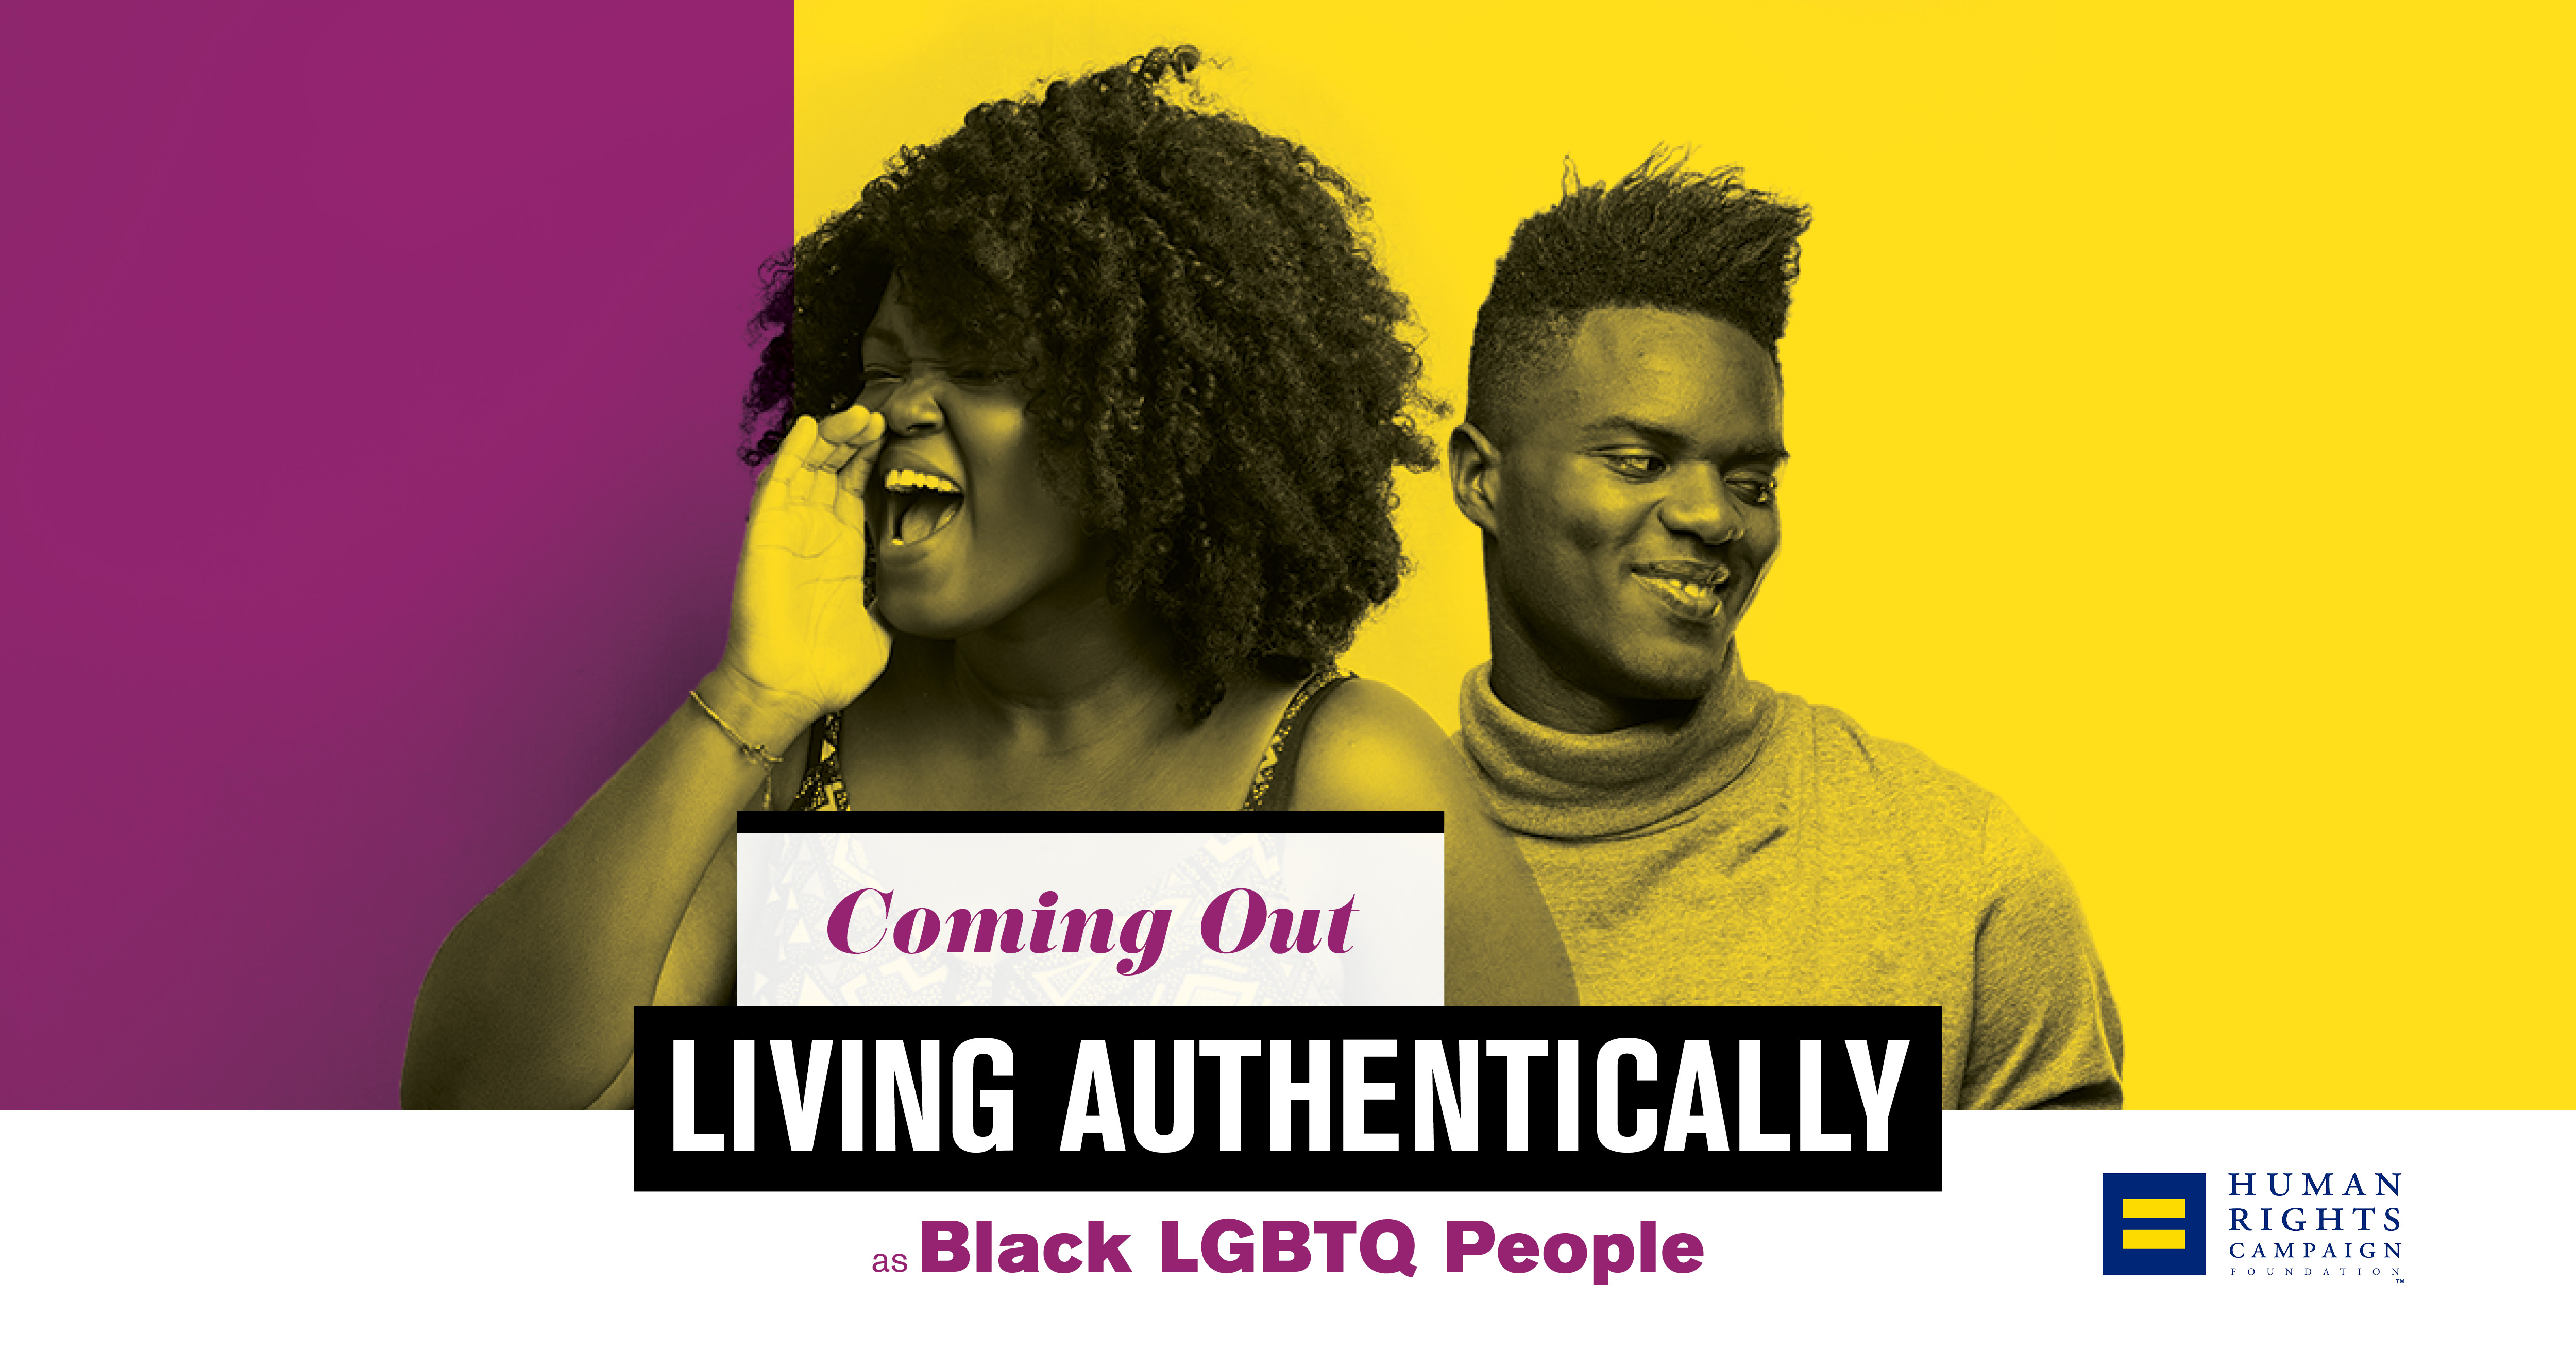 HRC Releases Coming Out Resource for Black LGBTQ People